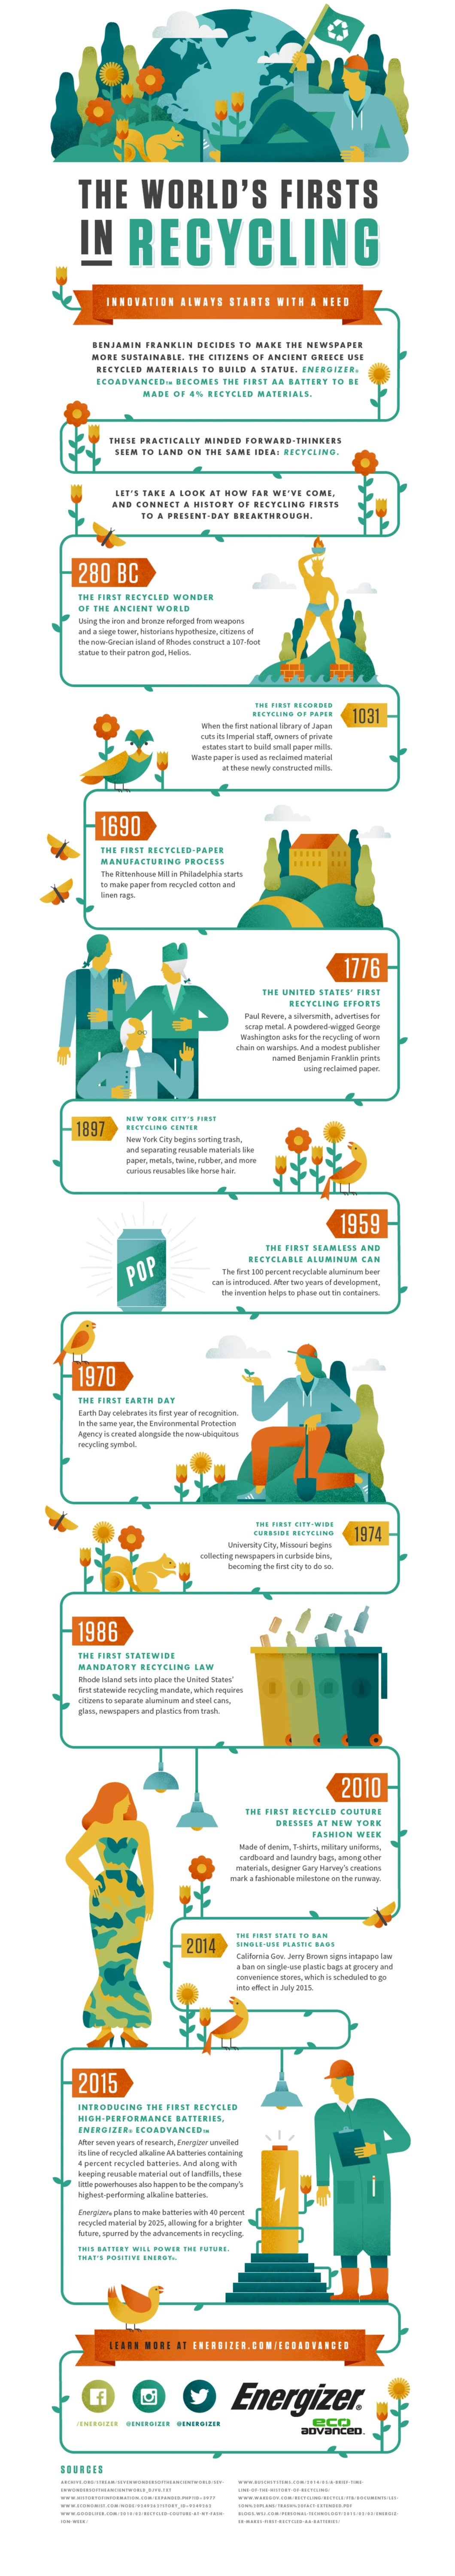 The Long History of Recycling: An Always-Relevant Practice - Infographic